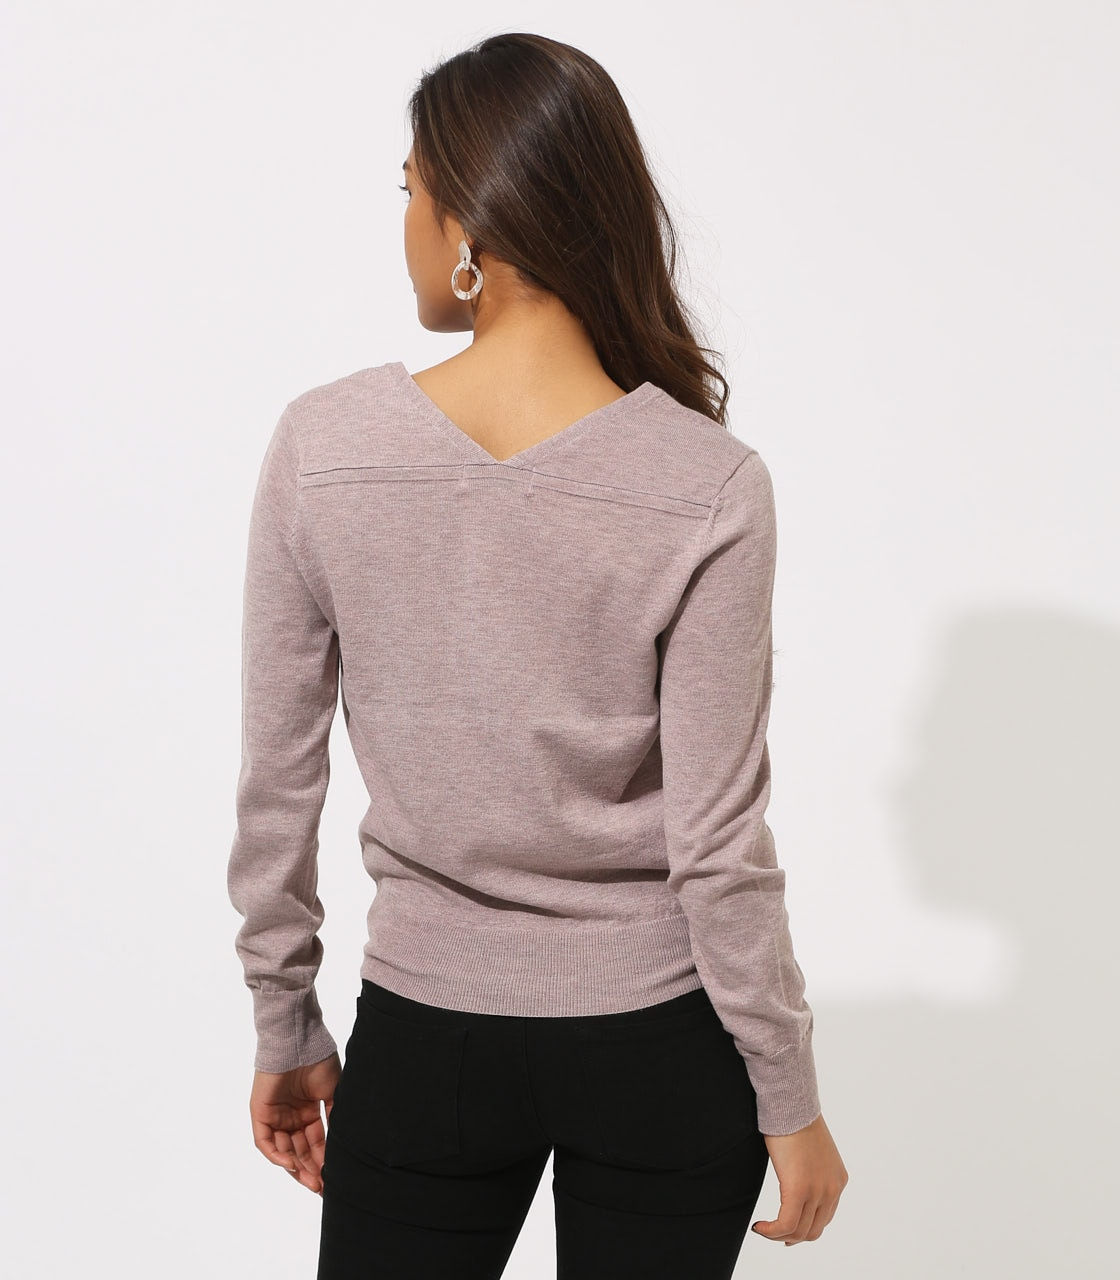 BASIC VNECK KNIT TOPS 詳細画像 BEG 7